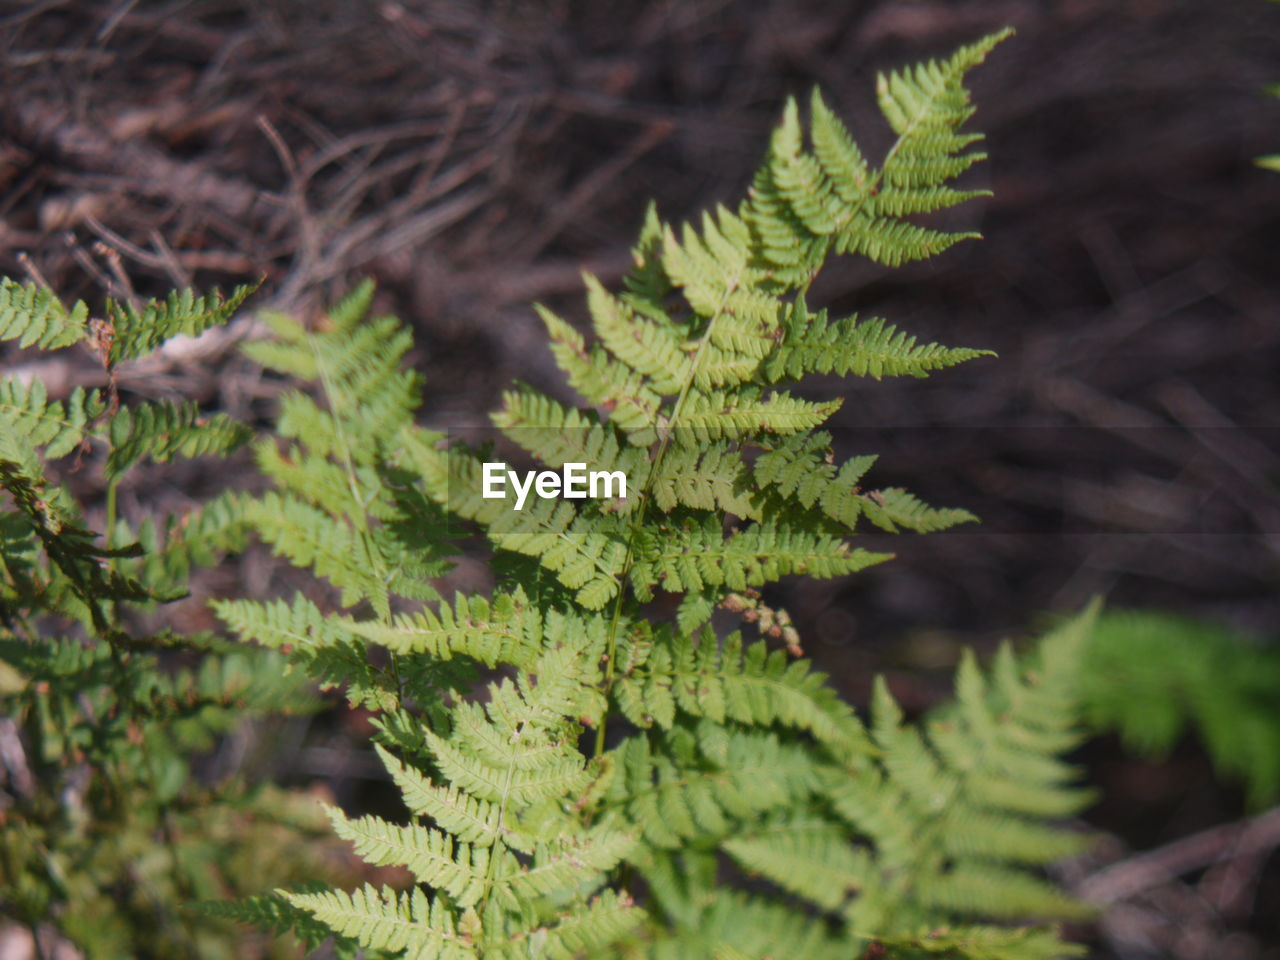 plant, growth, green color, leaf, plant part, close-up, nature, selective focus, day, no people, beauty in nature, tree, focus on foreground, branch, outdoors, tranquility, land, high angle view, fern, sunlight, pine tree, coniferous tree, needle - plant part, fir tree